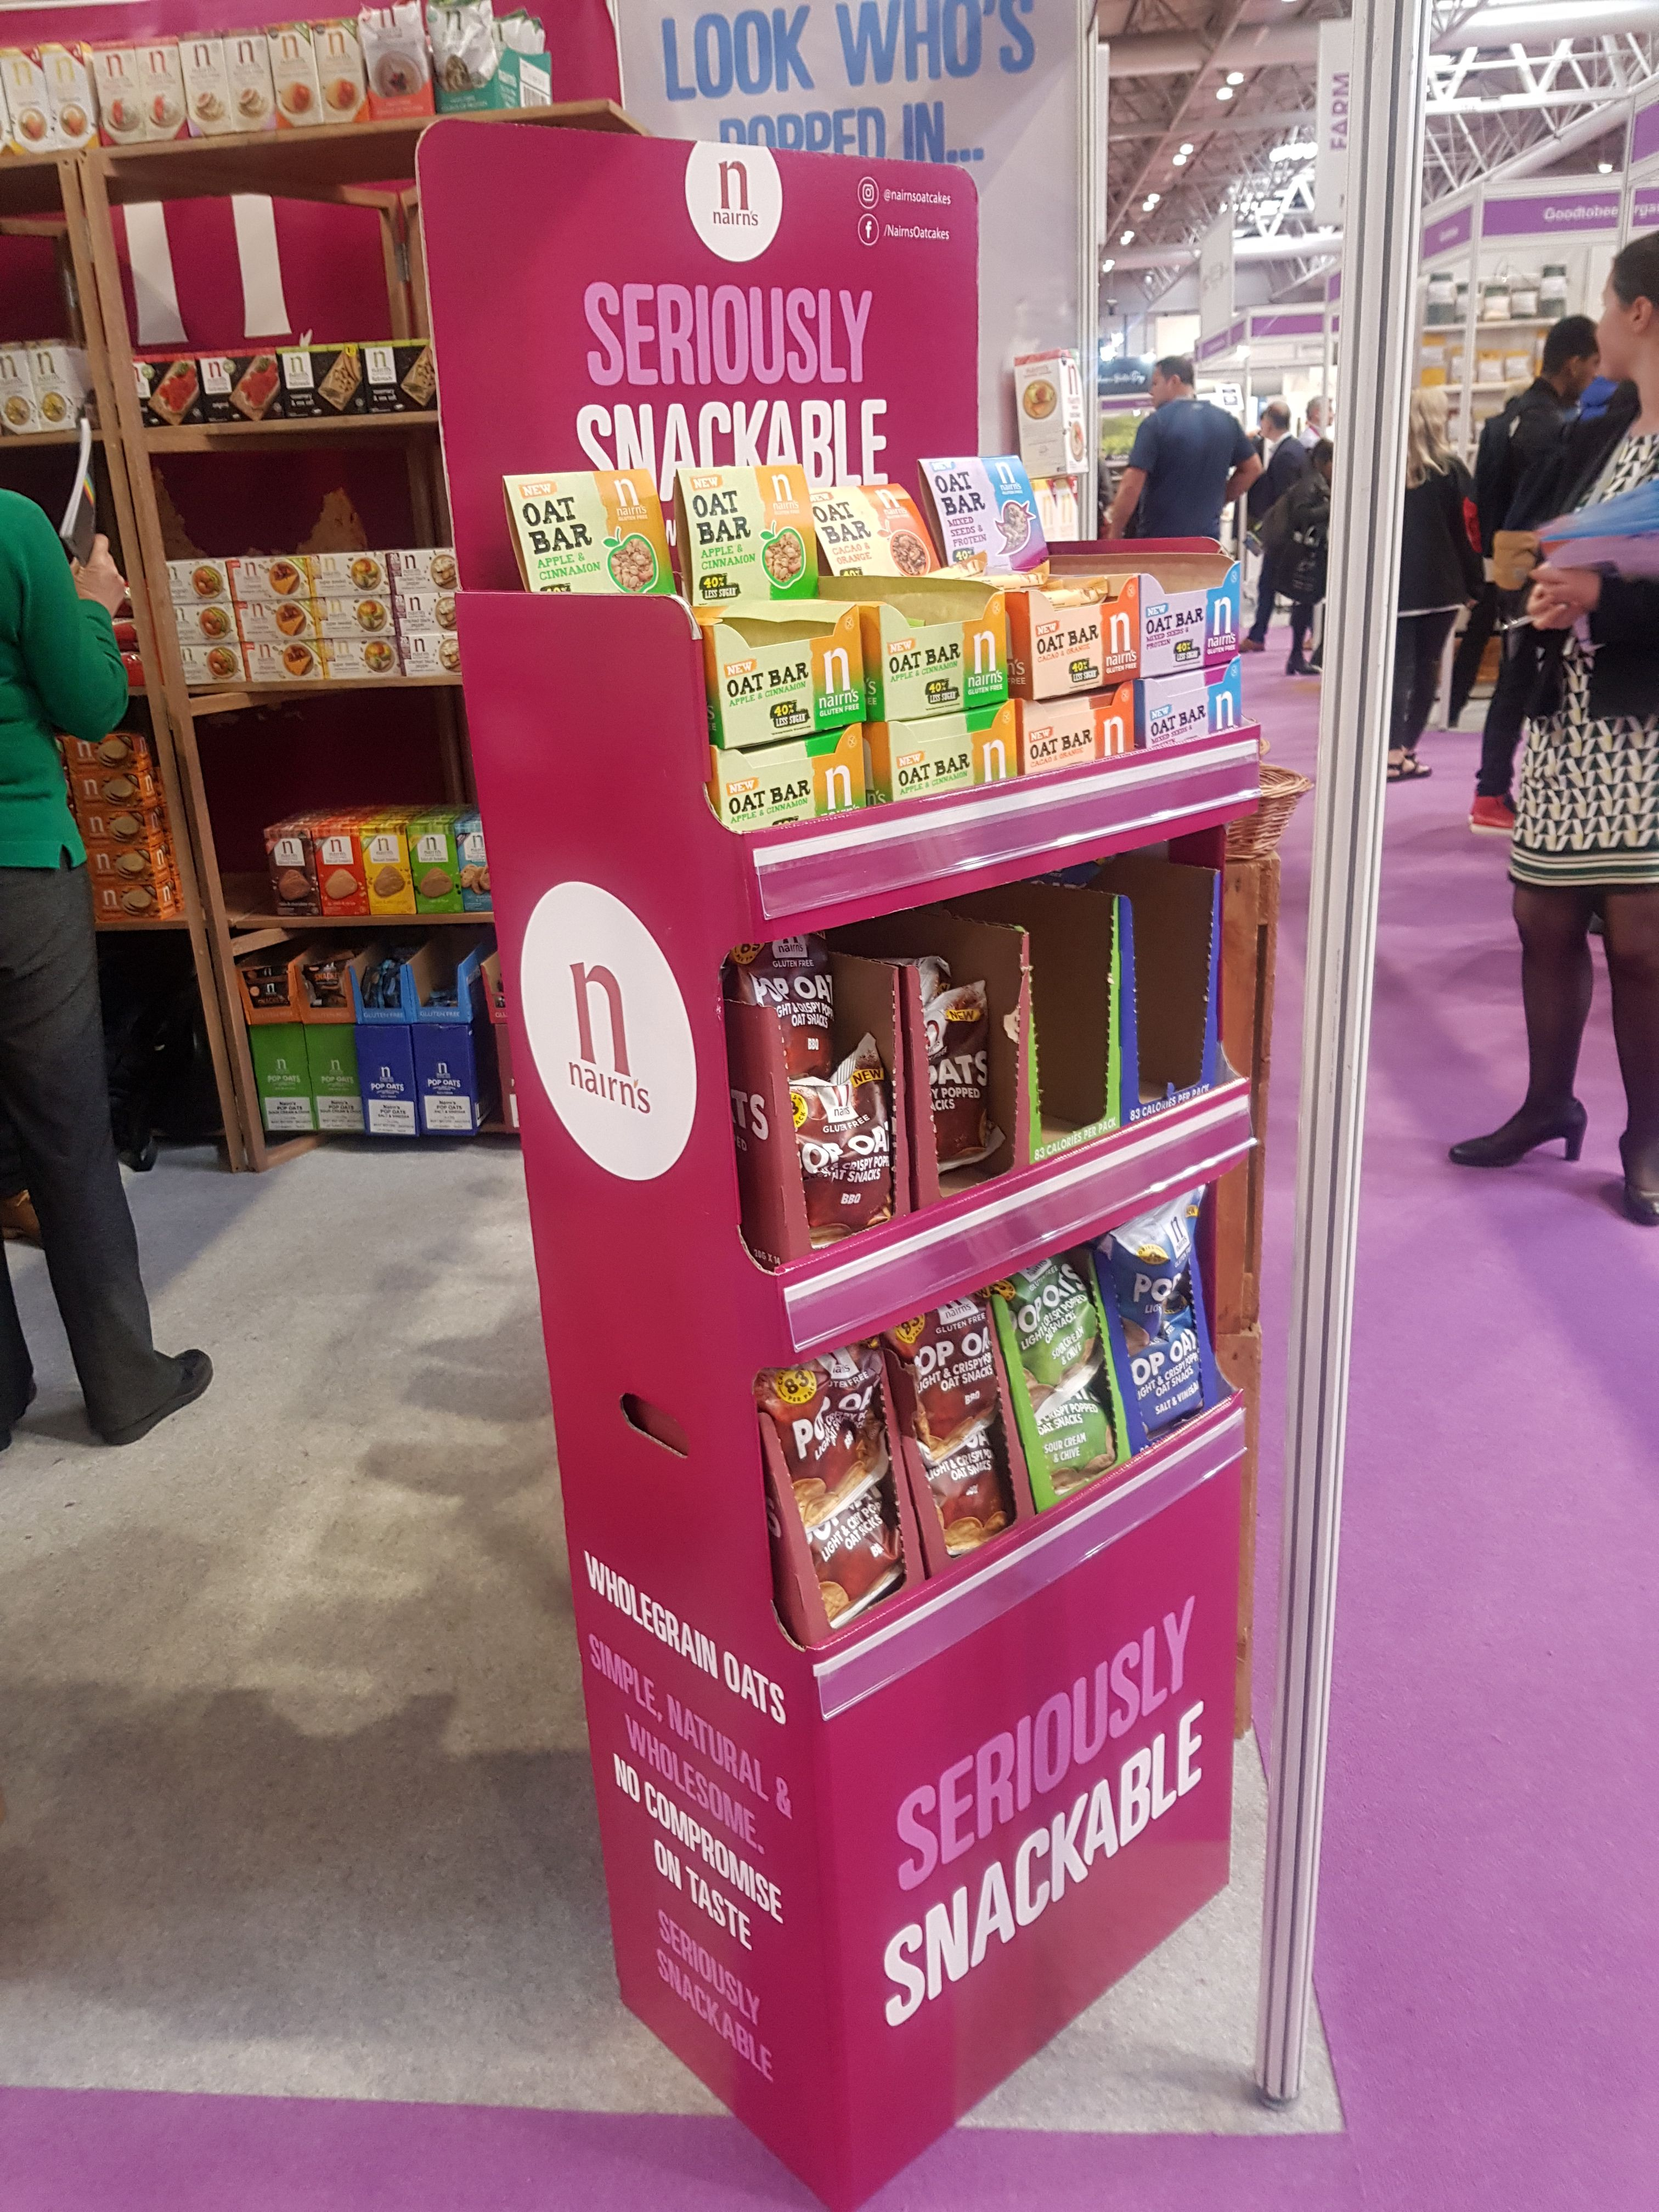 D Printing Exhibition Nec : Visited the national convenience show and stumbled upon this